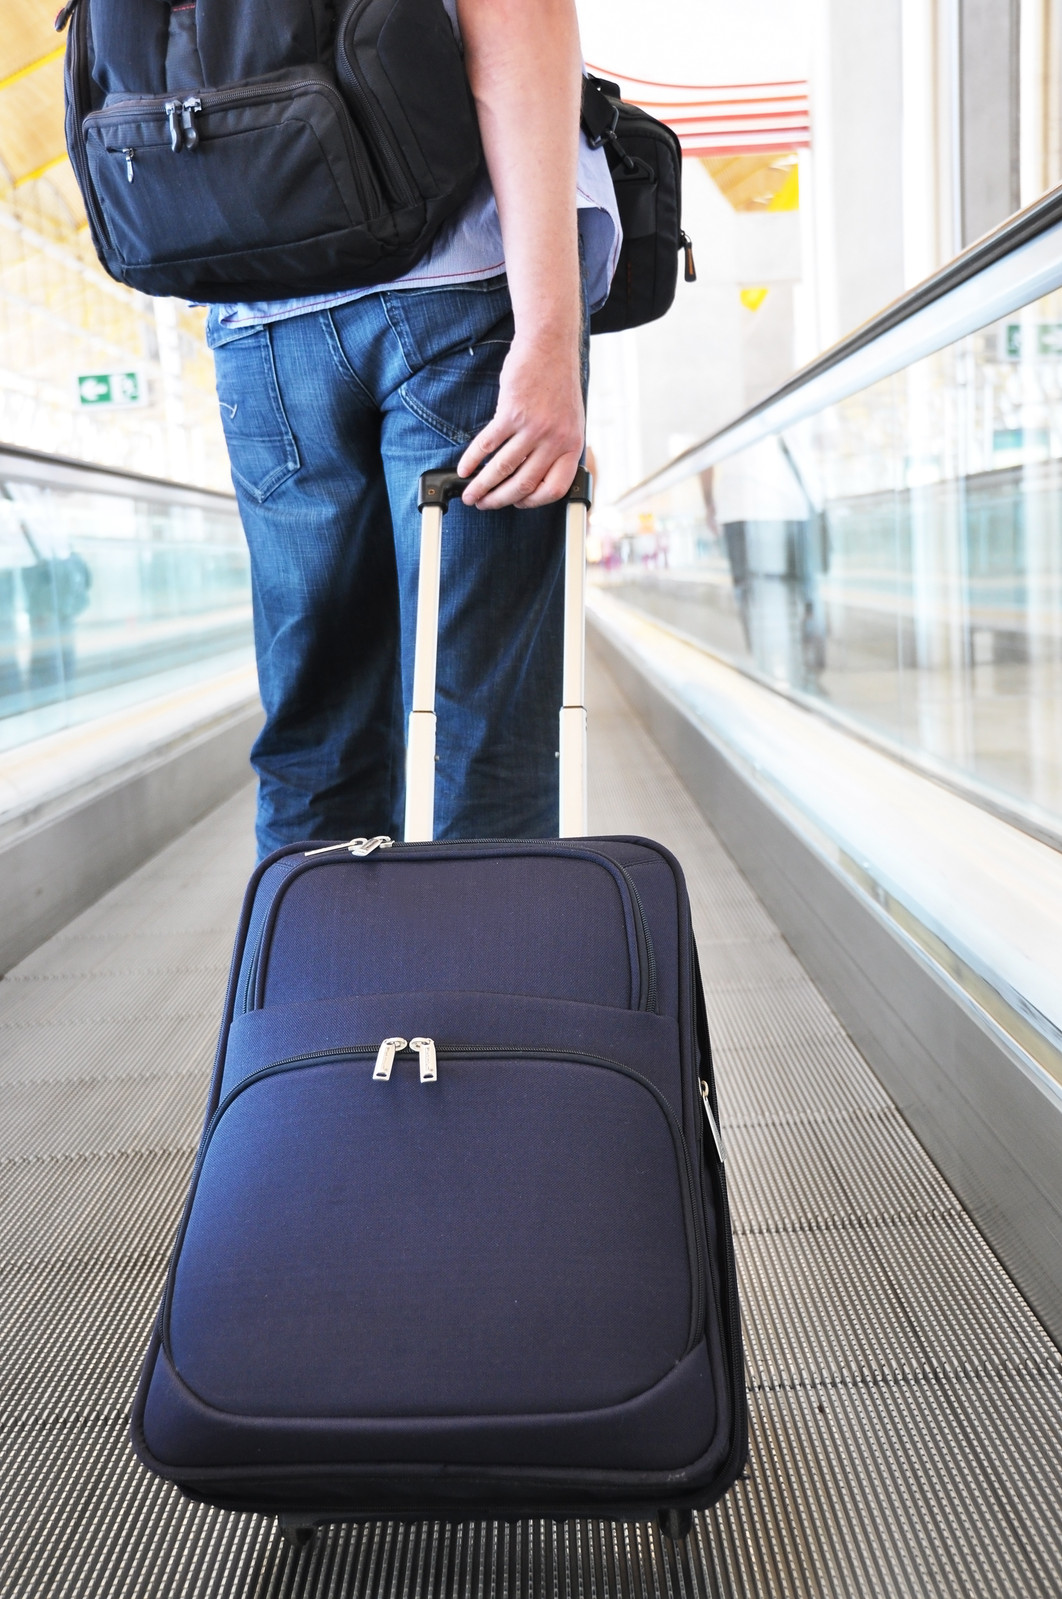 Travel Luggage: Selecting Your Suitcase or Backpack - Pretraveller